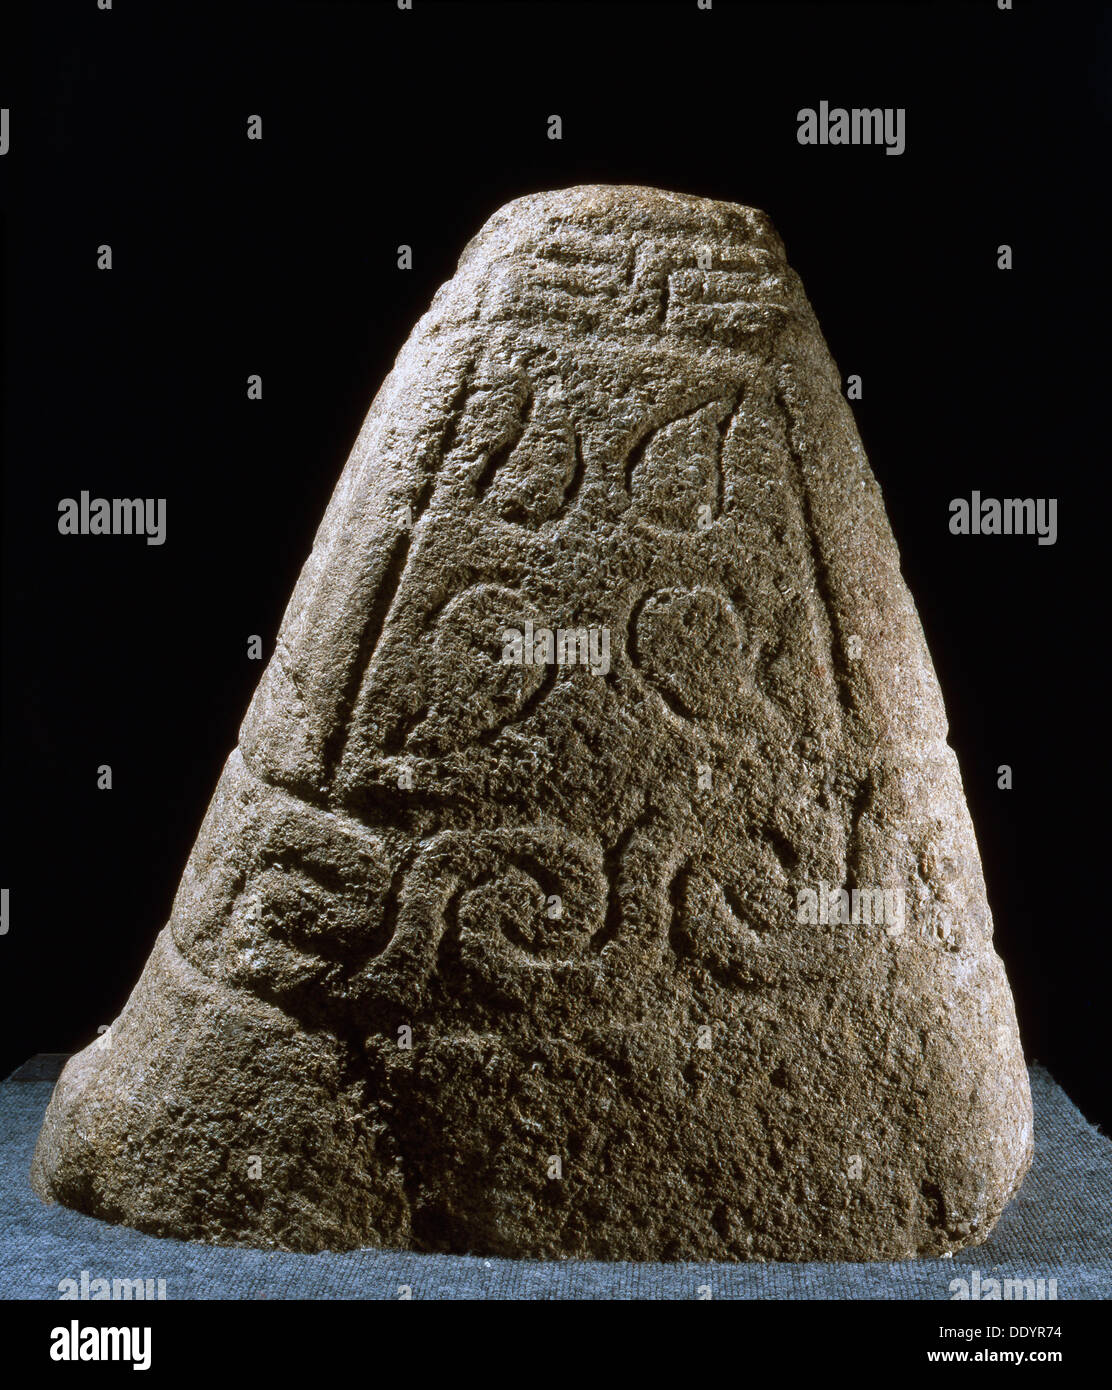 The Kermaria Stone, Celtic, 4th century BC. Artist: Werner Forman - Stock Image